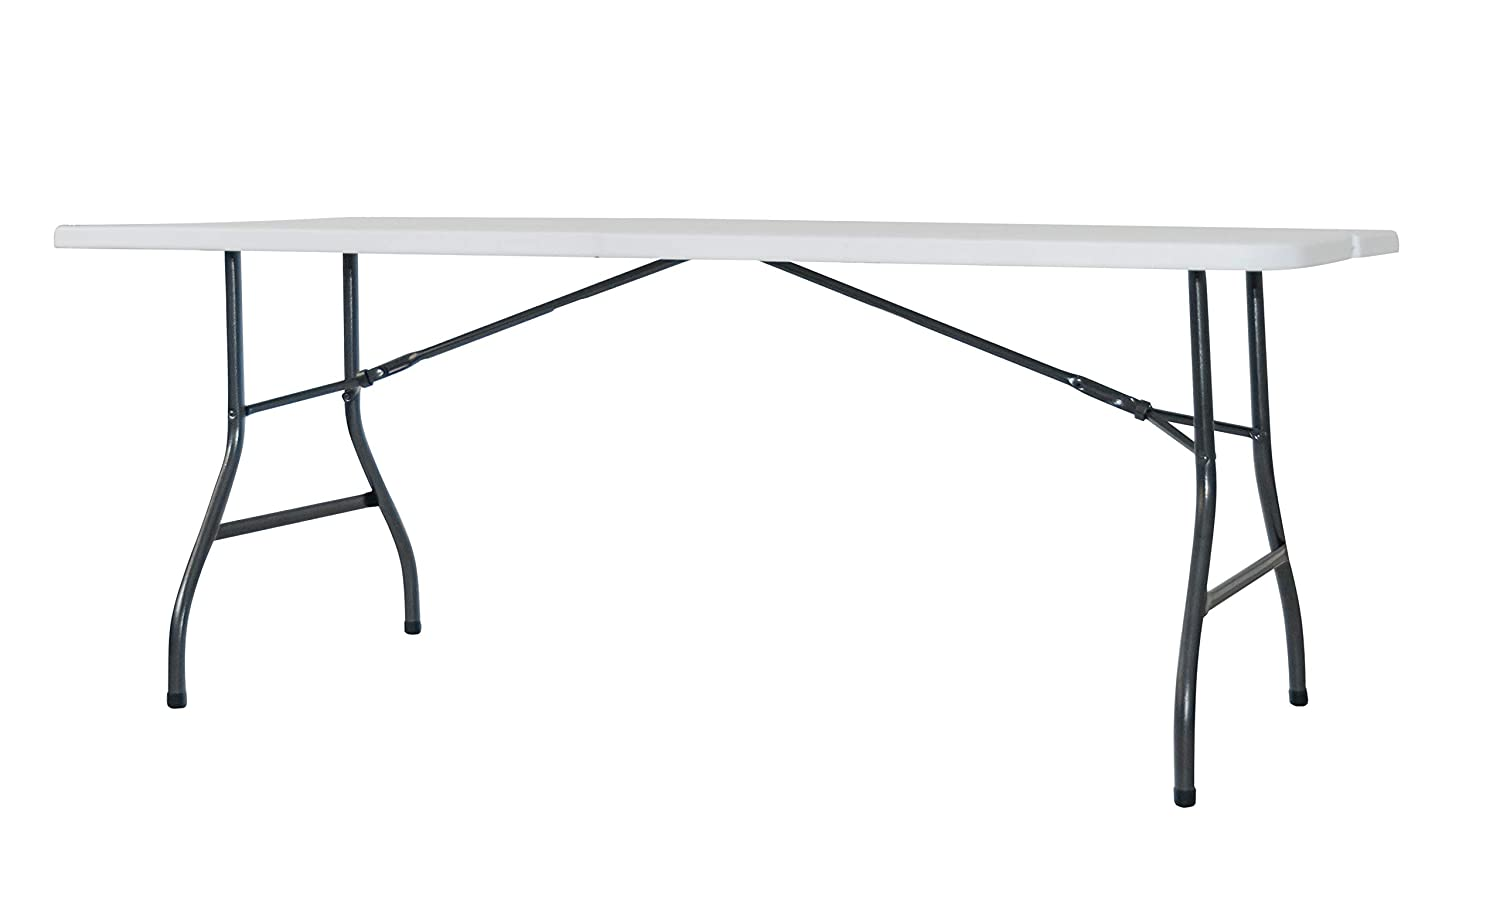 Alera ALEFR72H Fold-in-Half Resin Folding Table, 71w x 30d x 29h, White